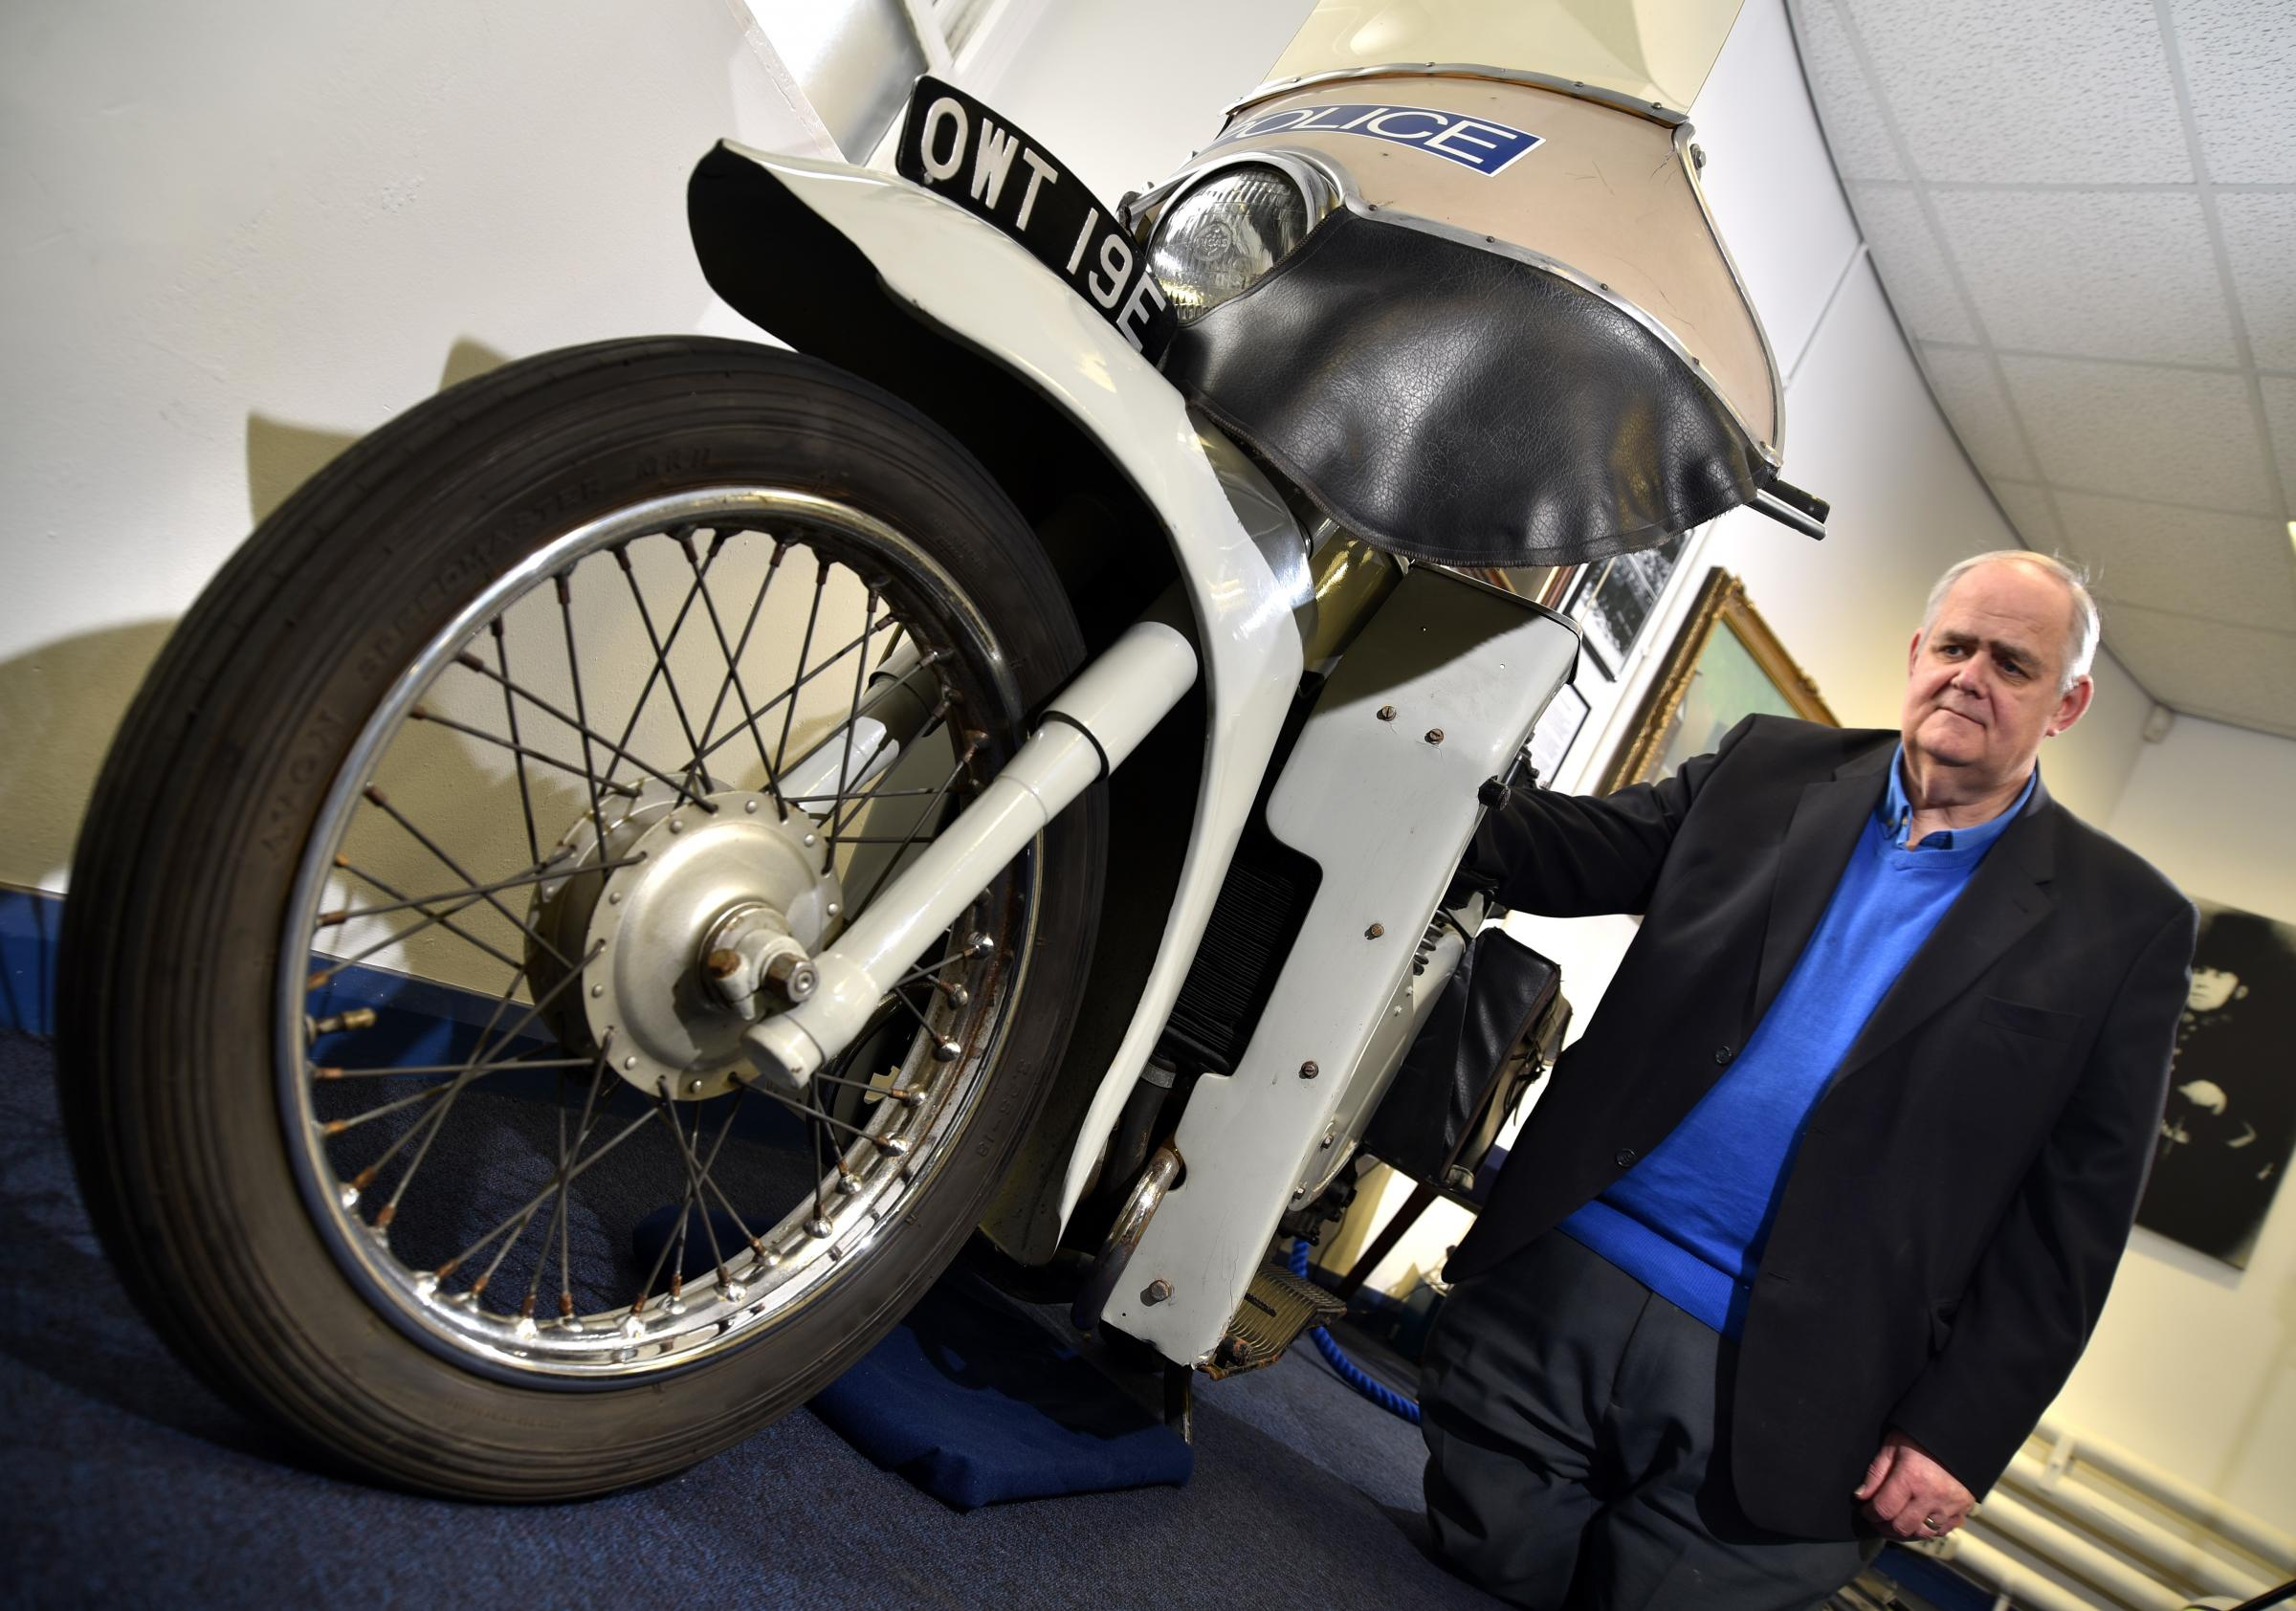 Bradford Police Museum wants volunteers to look after its vintage vehicles and lead tours of old cells